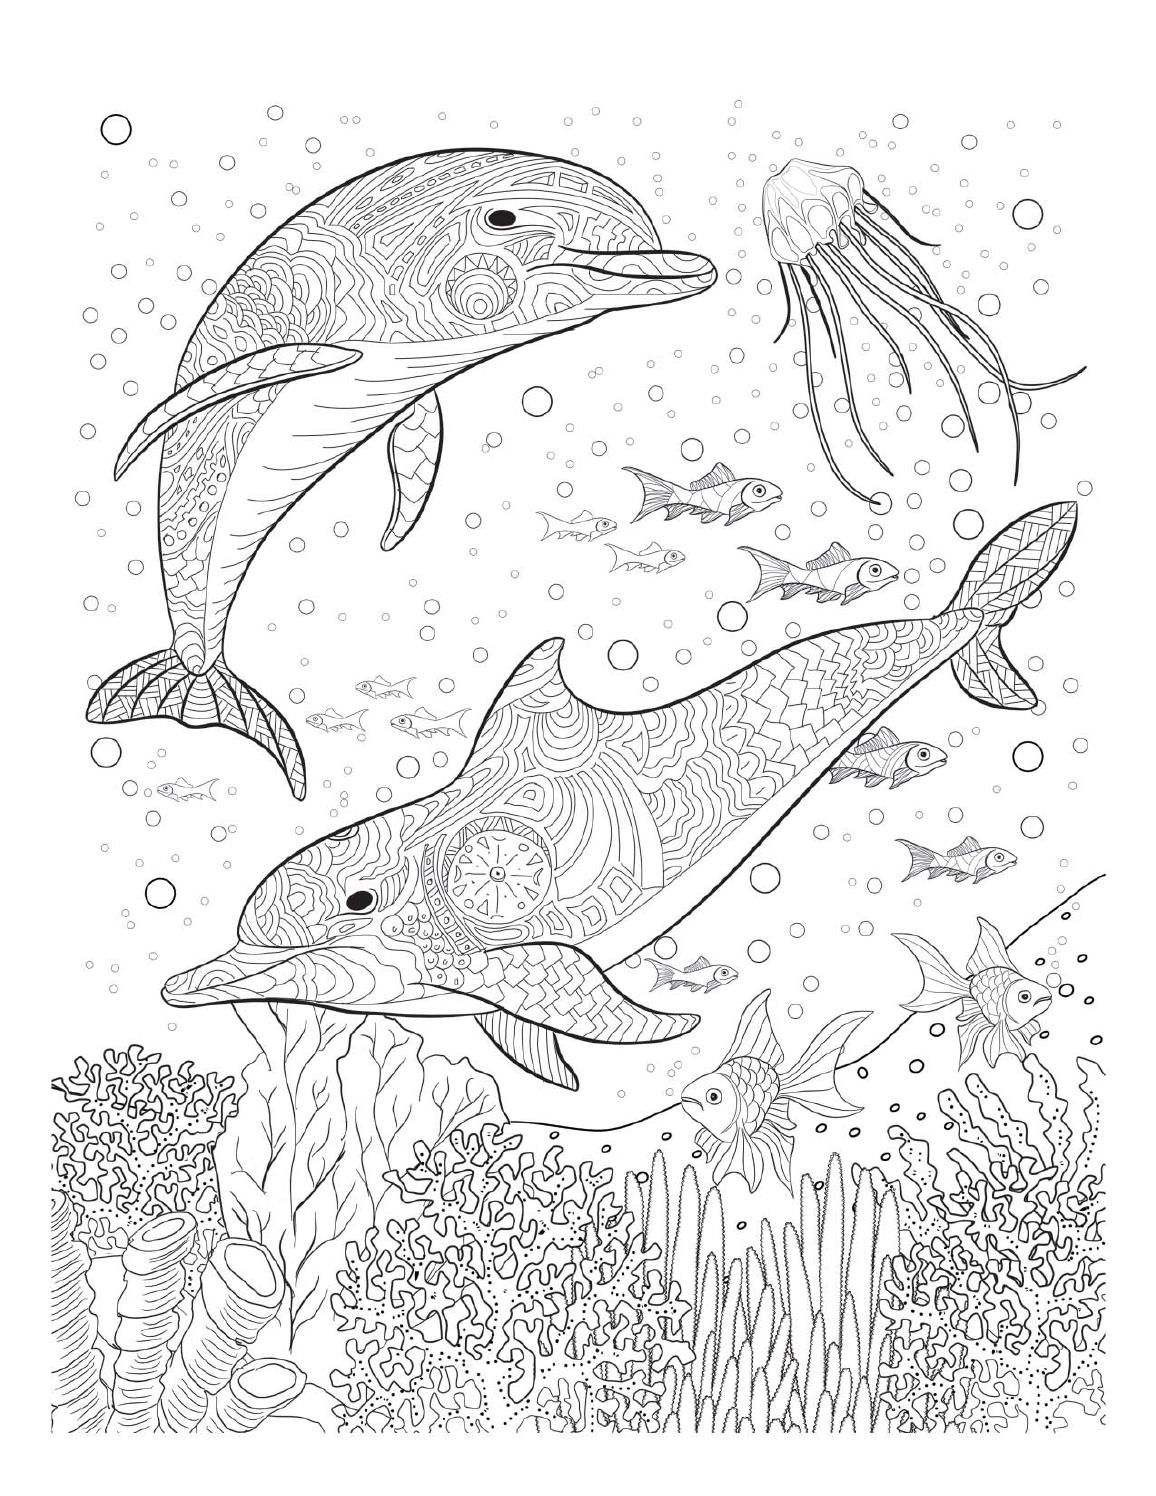 Oceana Adult Coloring Book Twenty Creative And Stress Relieving Pages For Adults Inspired From The Amazing Underwater World Of Oceans